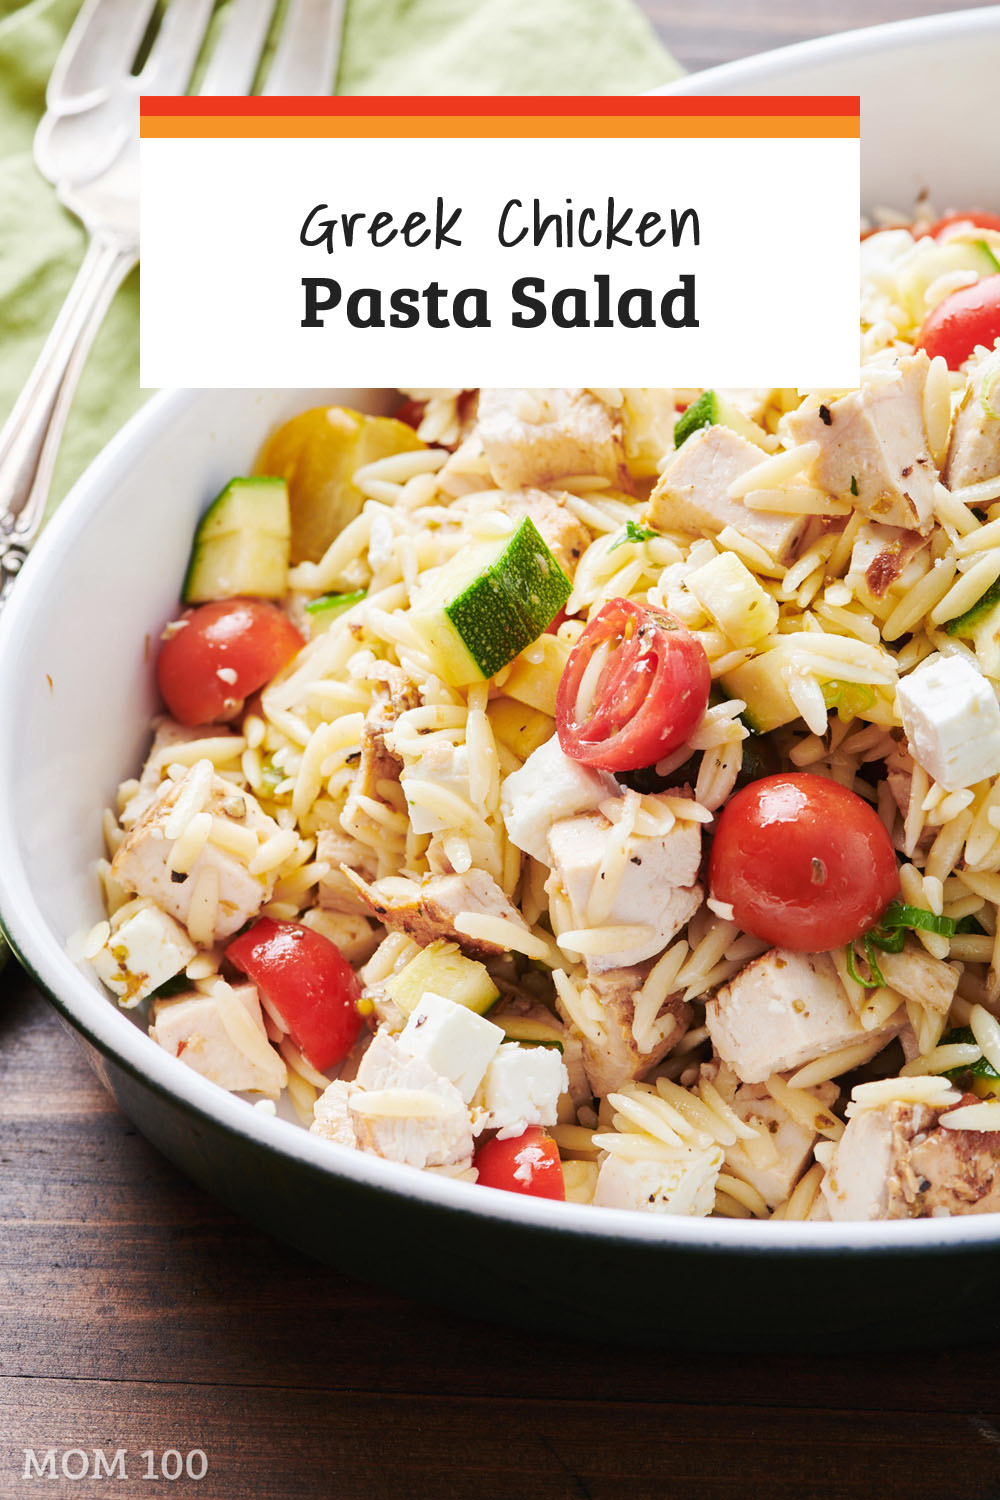 Greek Chicken Pasta Salad: This is a chockablock pasta salad filled with all of the things you love in Greek salad, plus chicken (or skip the chicken and make a vegetarian version!)